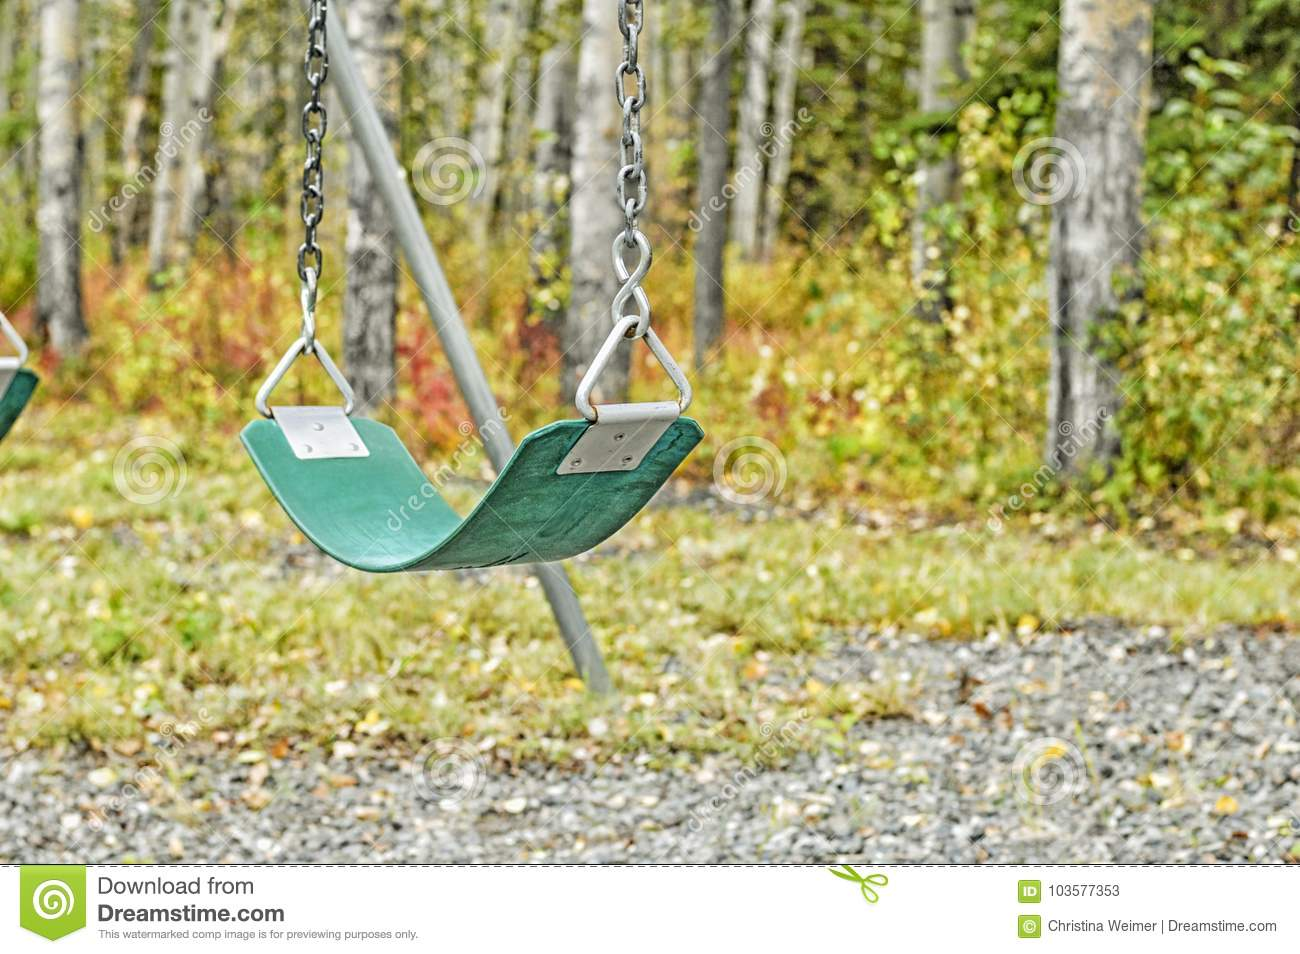 Swinging on the swingset of life